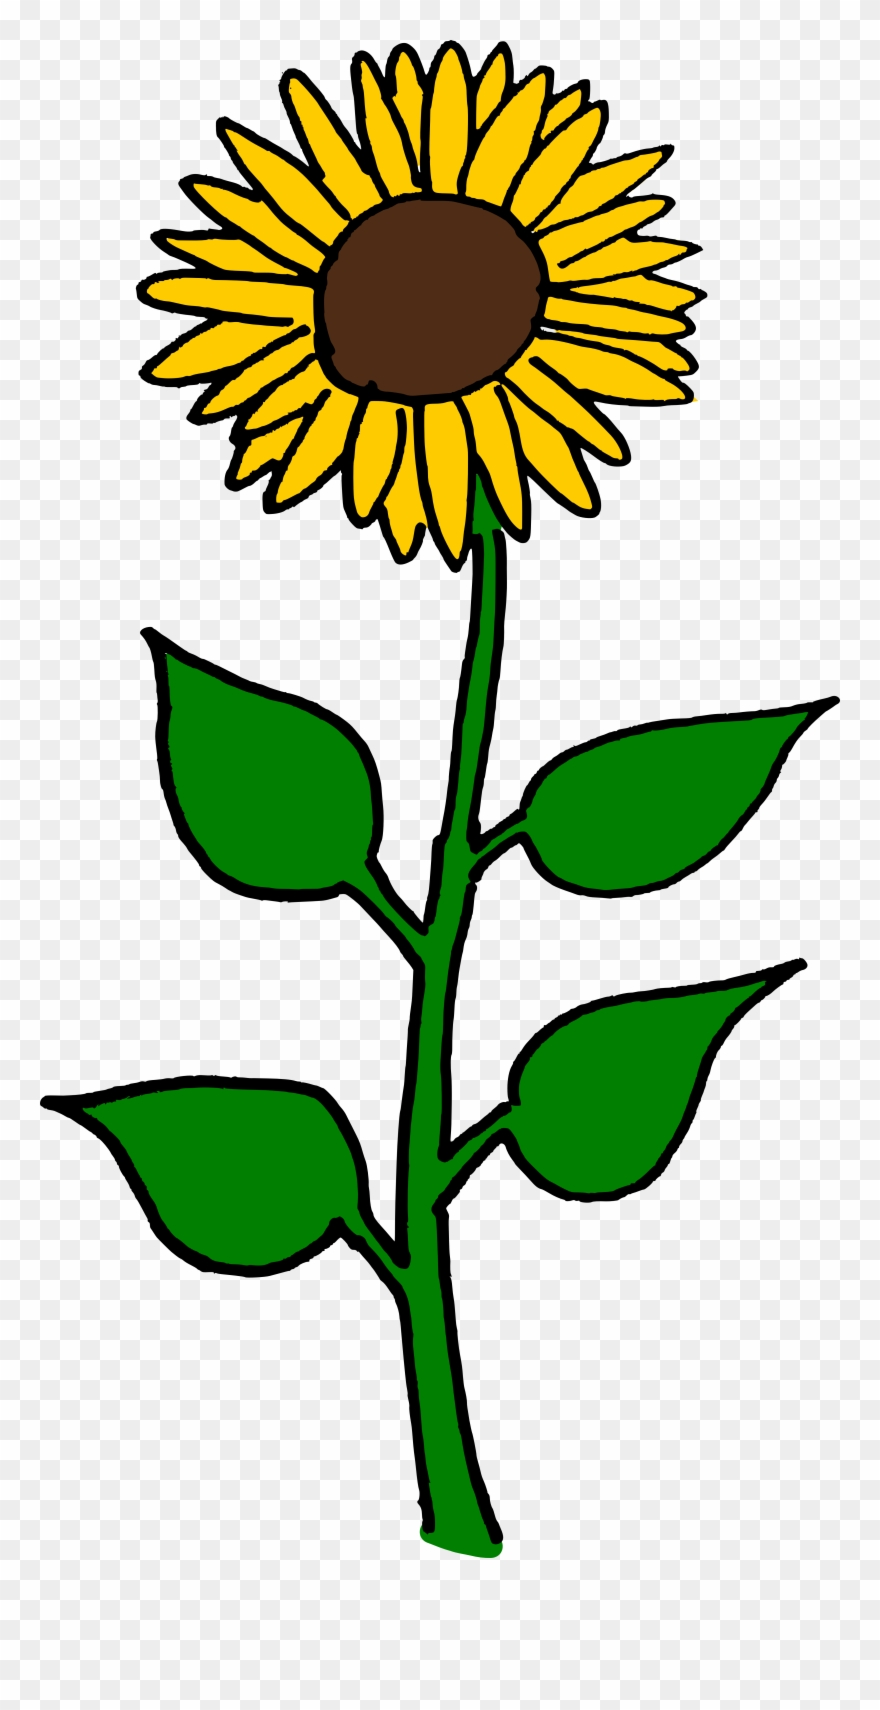 Flower Clipart Sunflower.